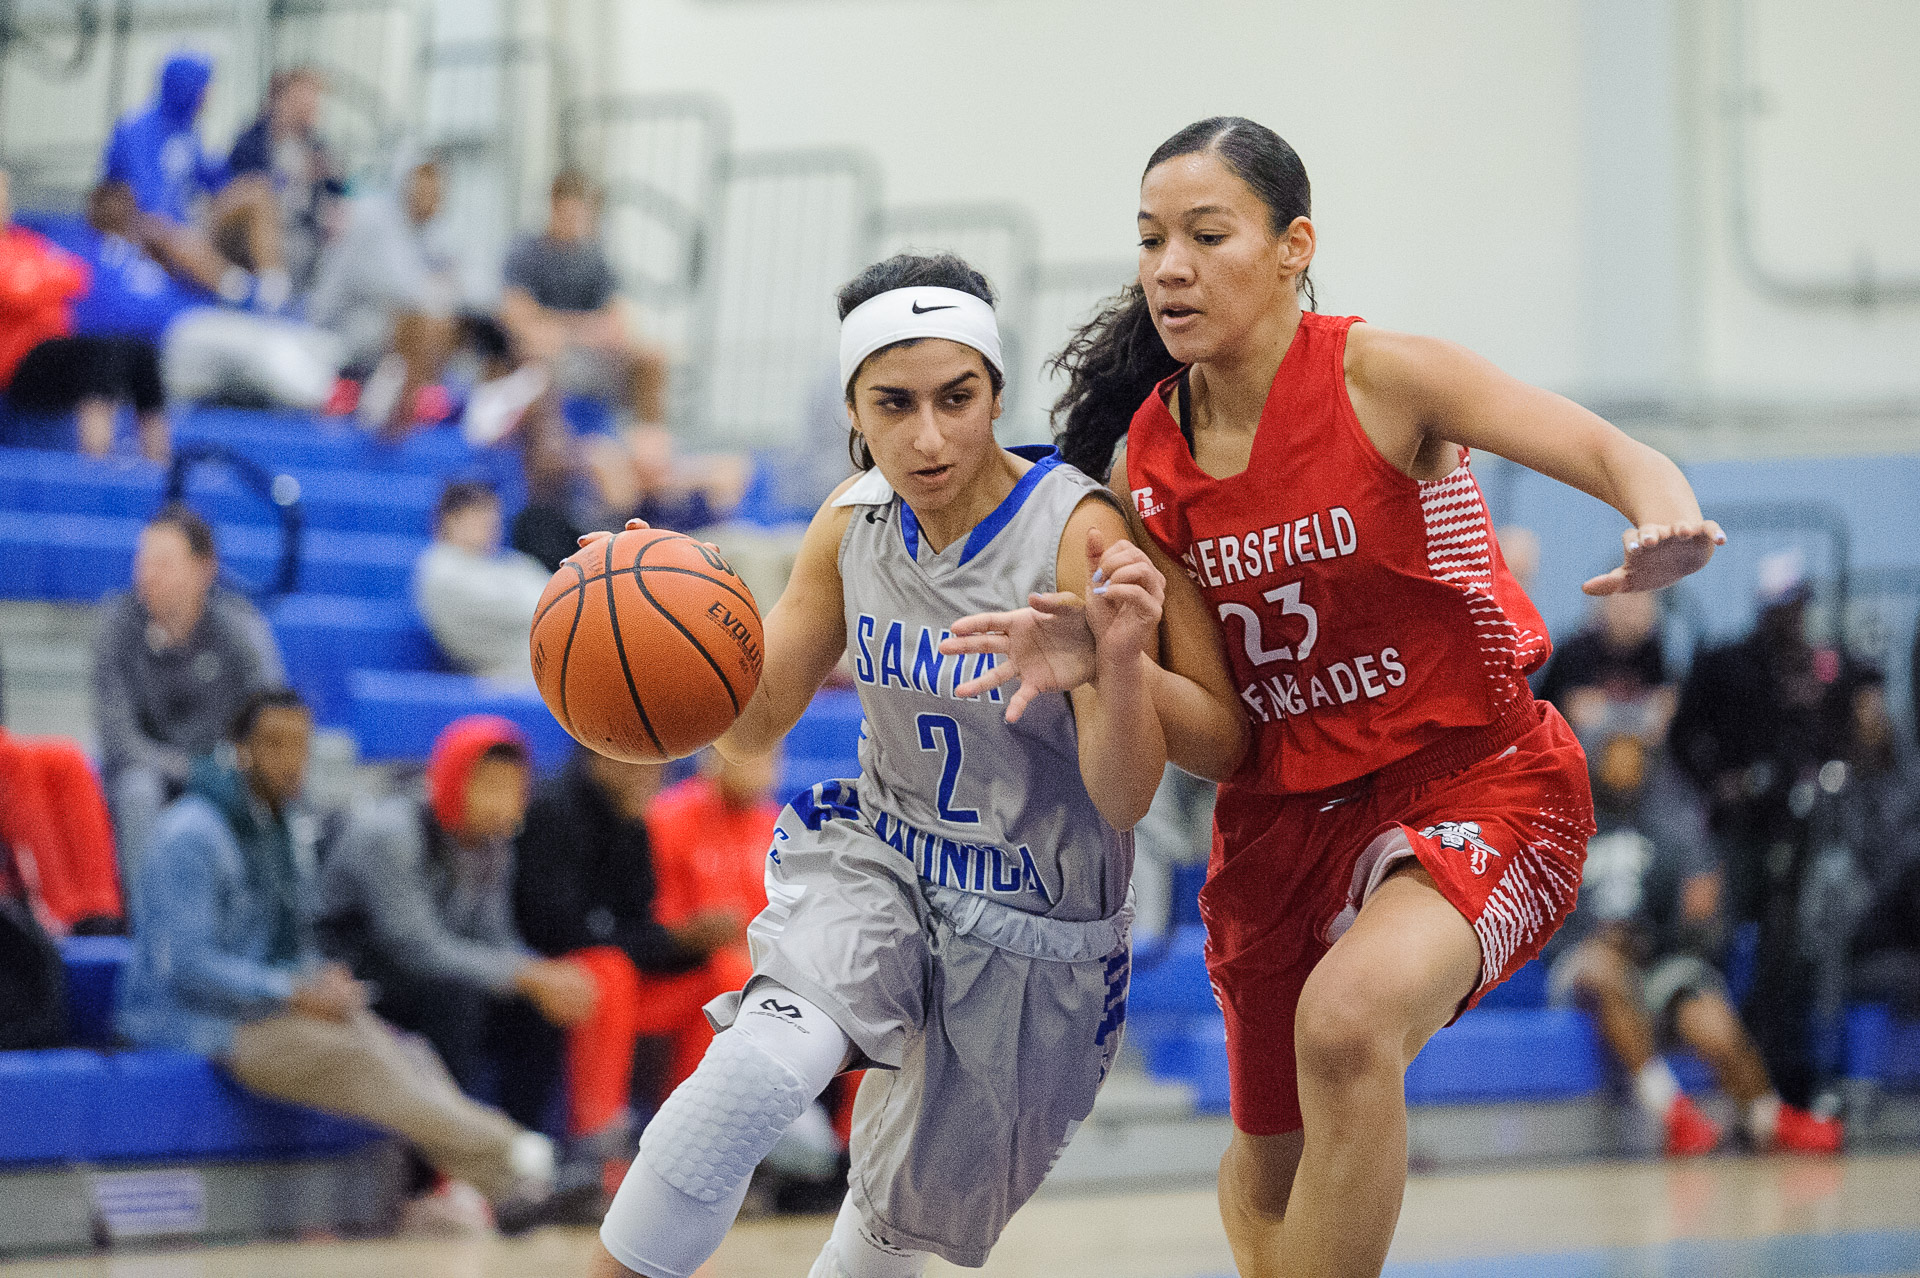 Guard Jessica Melamed (2,Left) of Santa Monica College dribbles past Octavia Croney (23,Right) of Bakersfield College. The Santa Monica College Corsairs lose the game 62-72 to the Bakersfield College Renegades. The game was held at the SMC Pavilion at the Santa Monica College Main Campus in Santa Monica, Calif.. January 20, 2018. (Photo by: Justin Han/Corsair Staff)